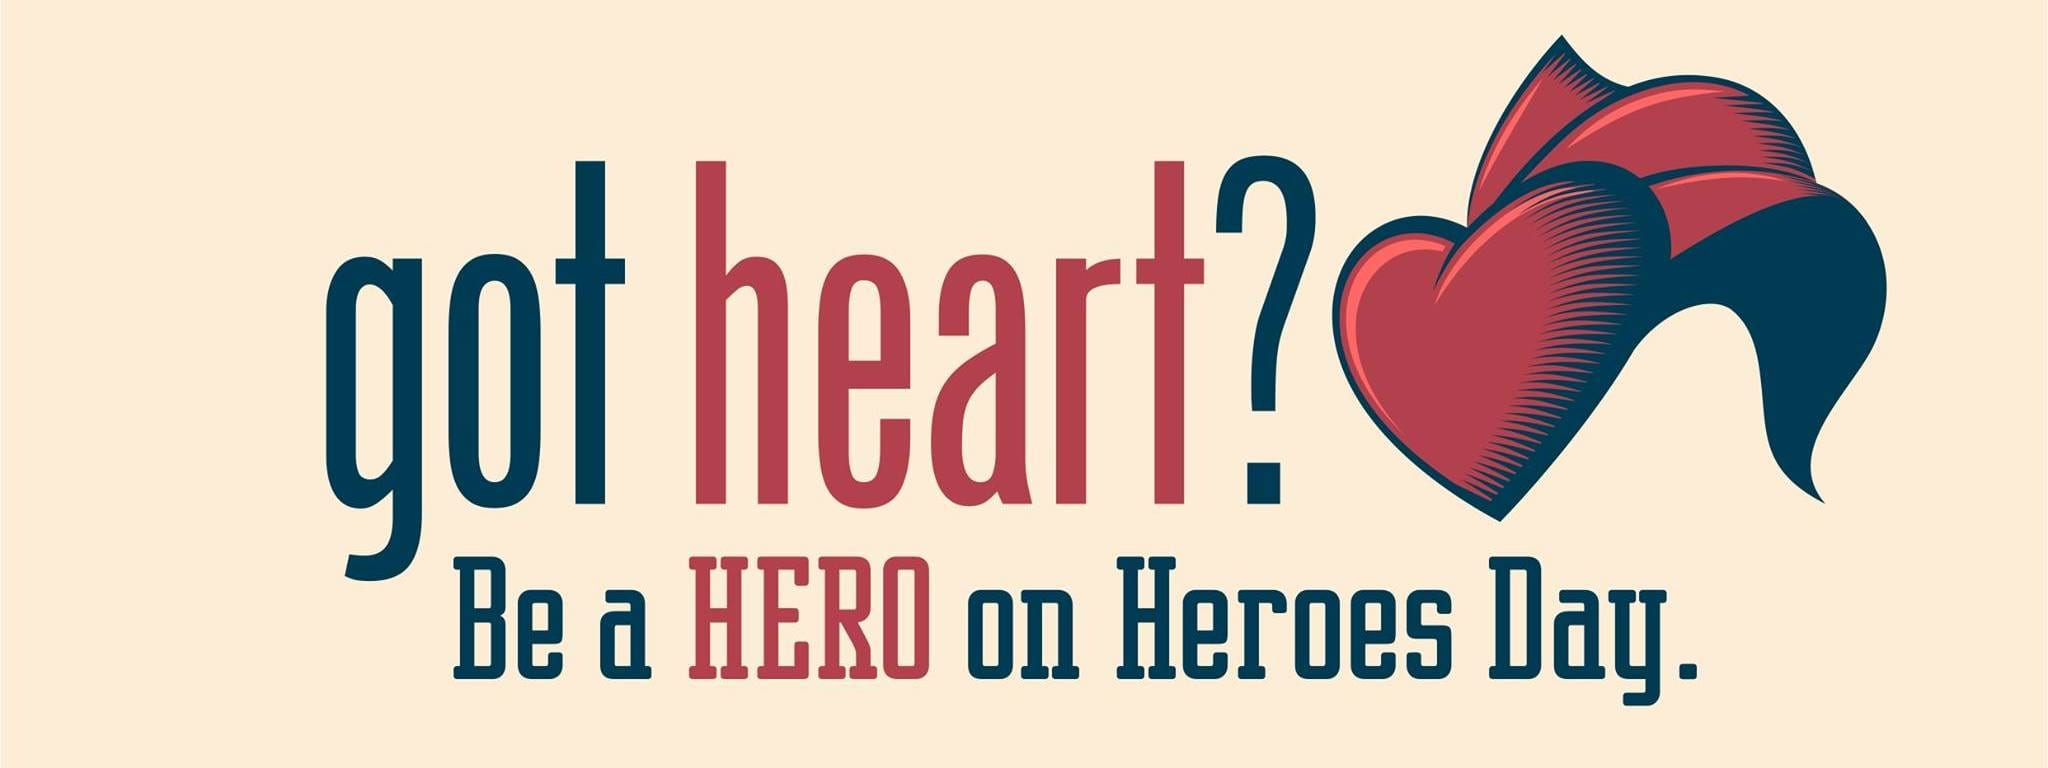 Got Heart: Be a Hero on Heroes Day